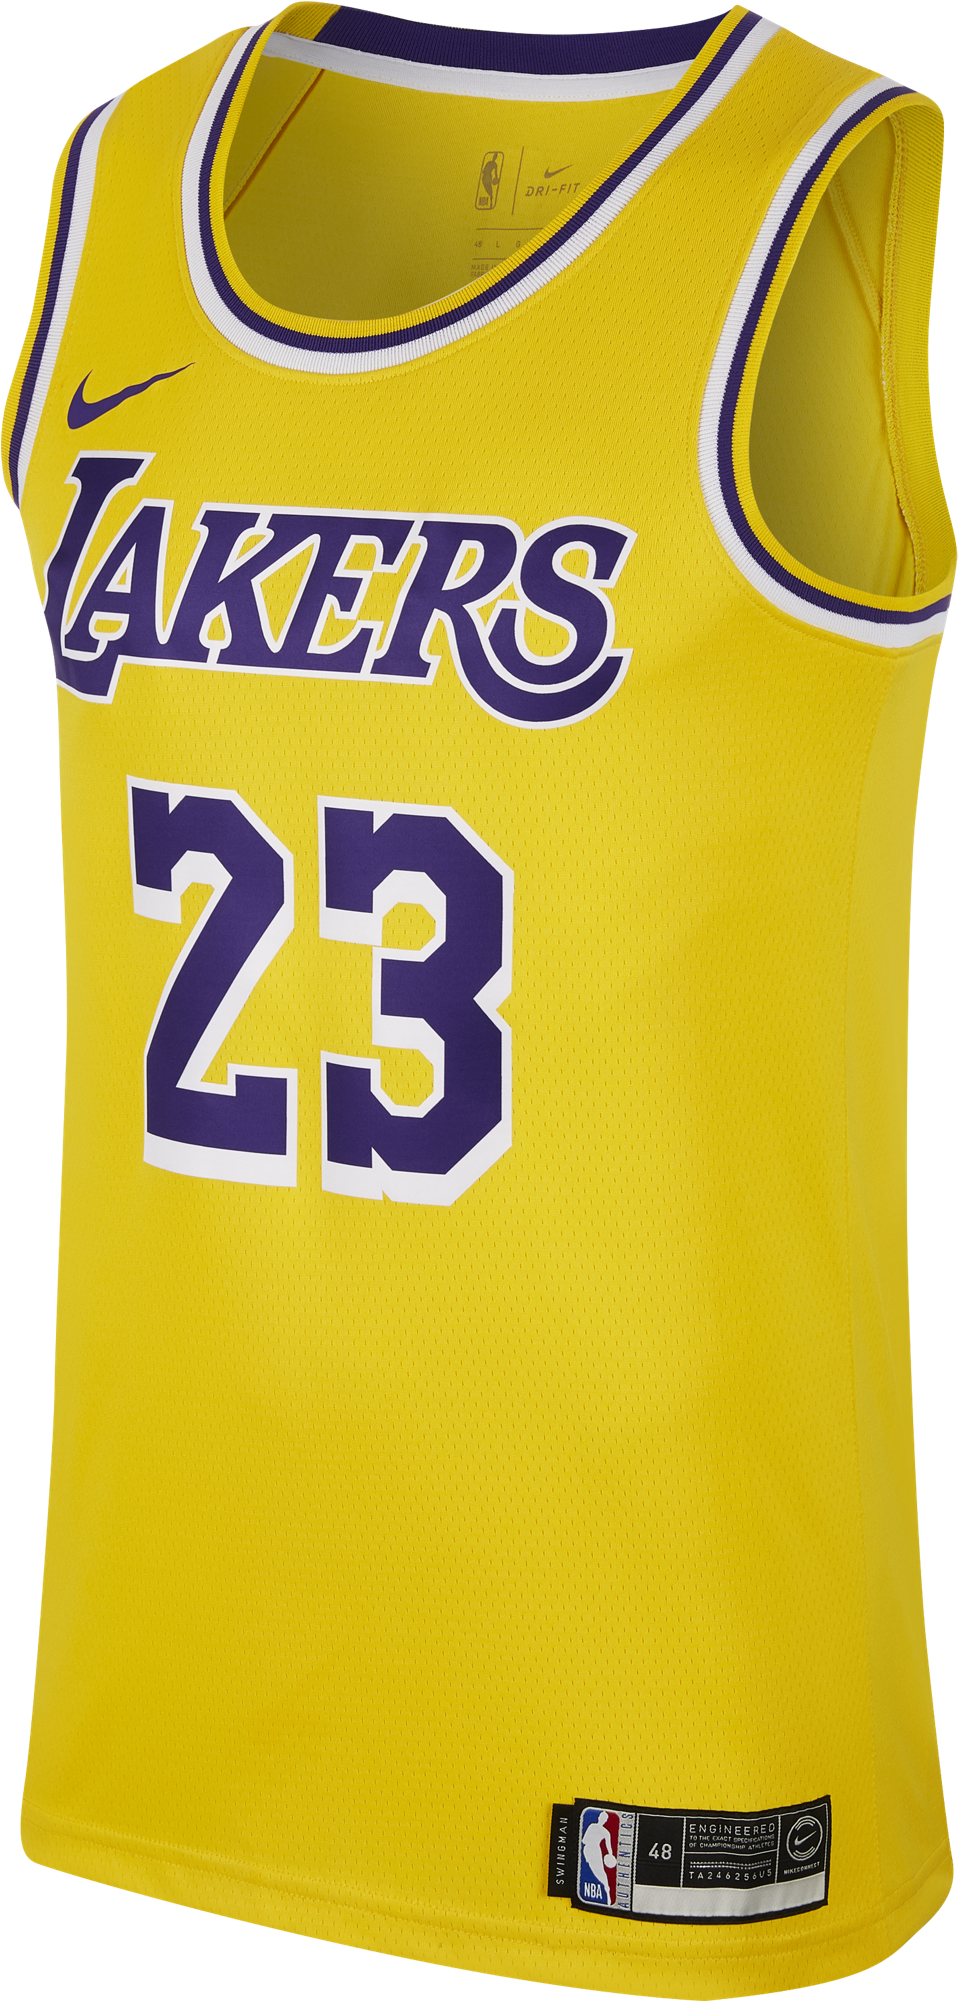 Download Nike Nba Los Angeles Lakers Lebron James Swingman Road Png Image With No Background Pngkey Com